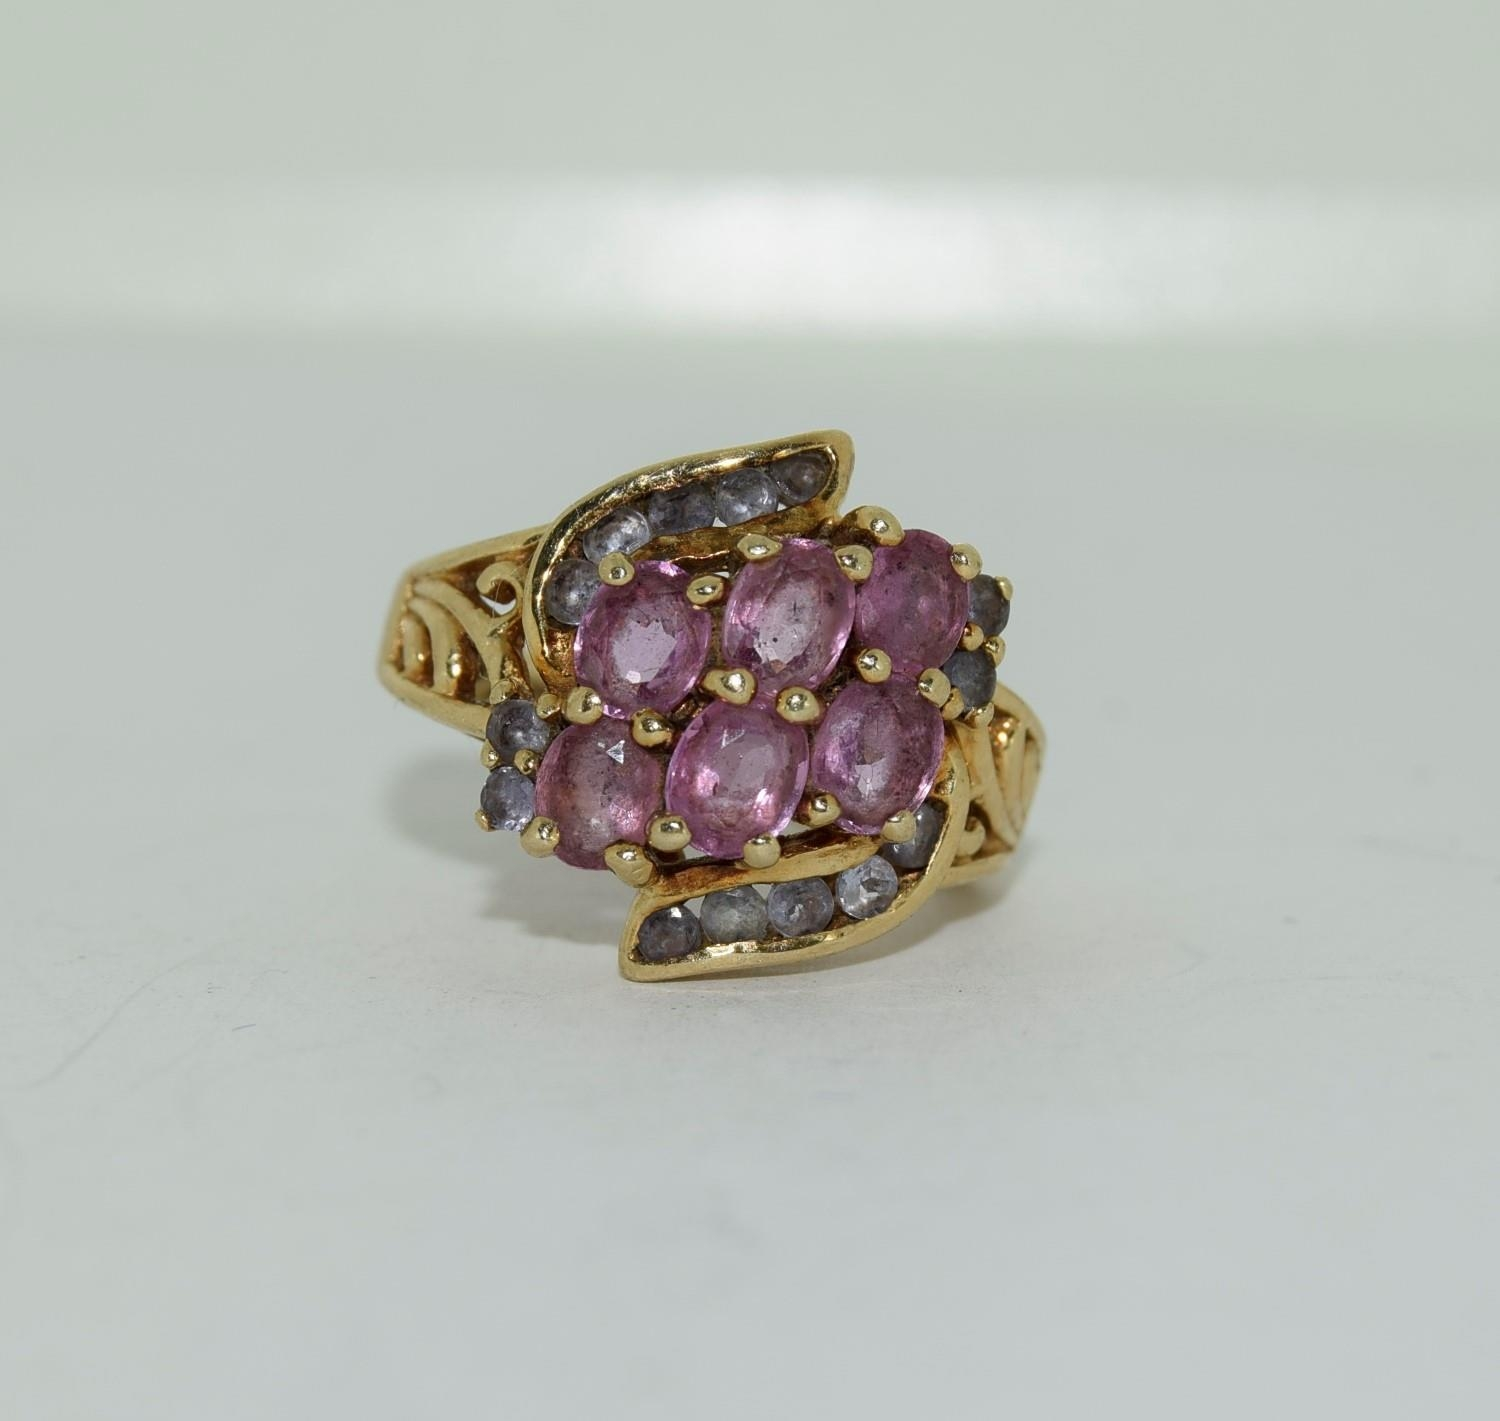 9ct gold ladies pink tourmaline and sapphire twist ring size L 4.9gm - Image 2 of 10